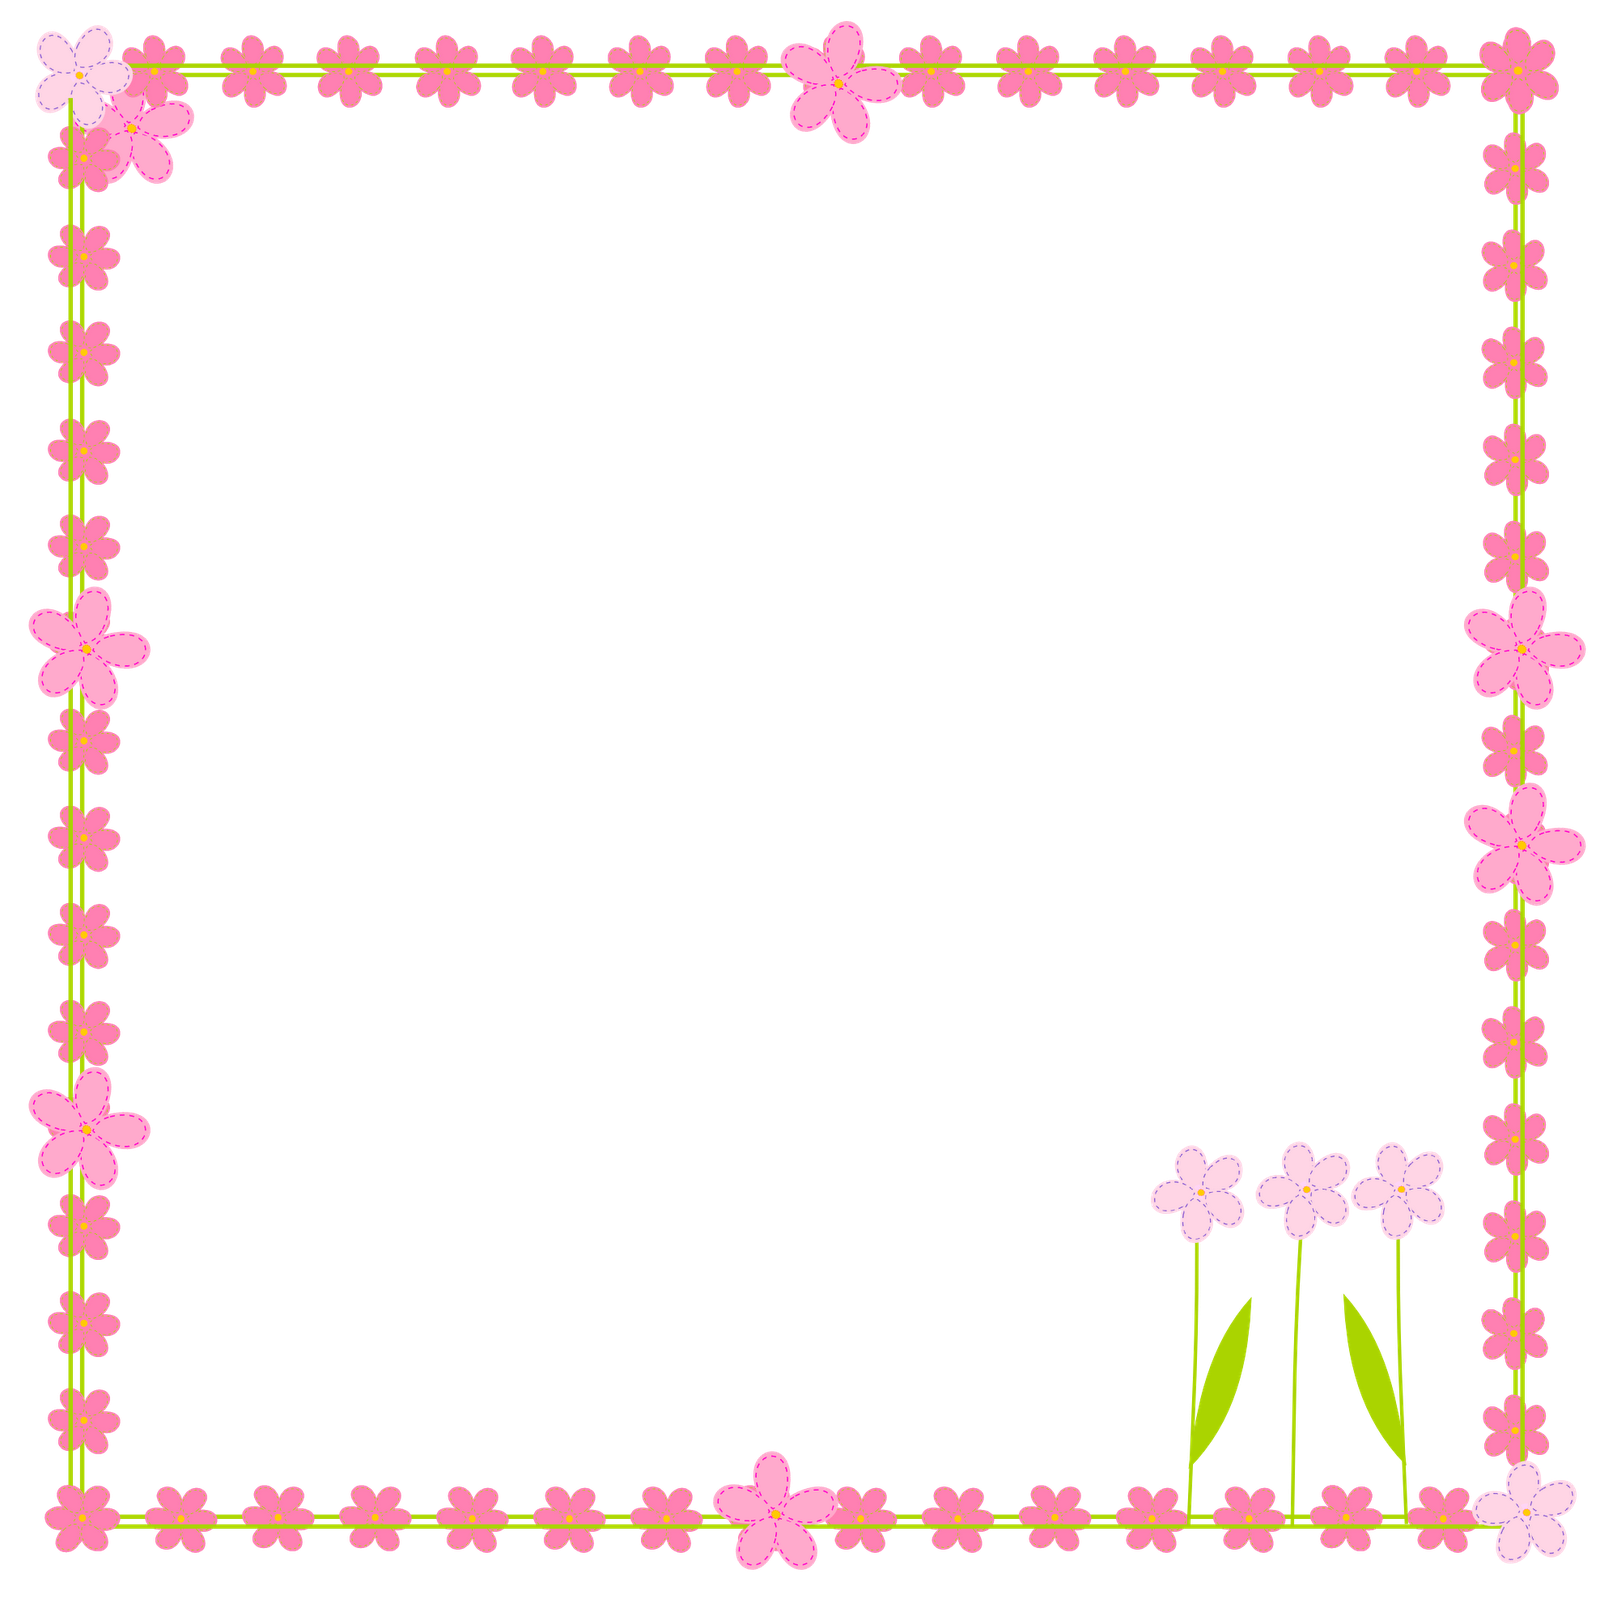 Free Digital Flower Border Scrapbooking Elements   Clipart Rahmen